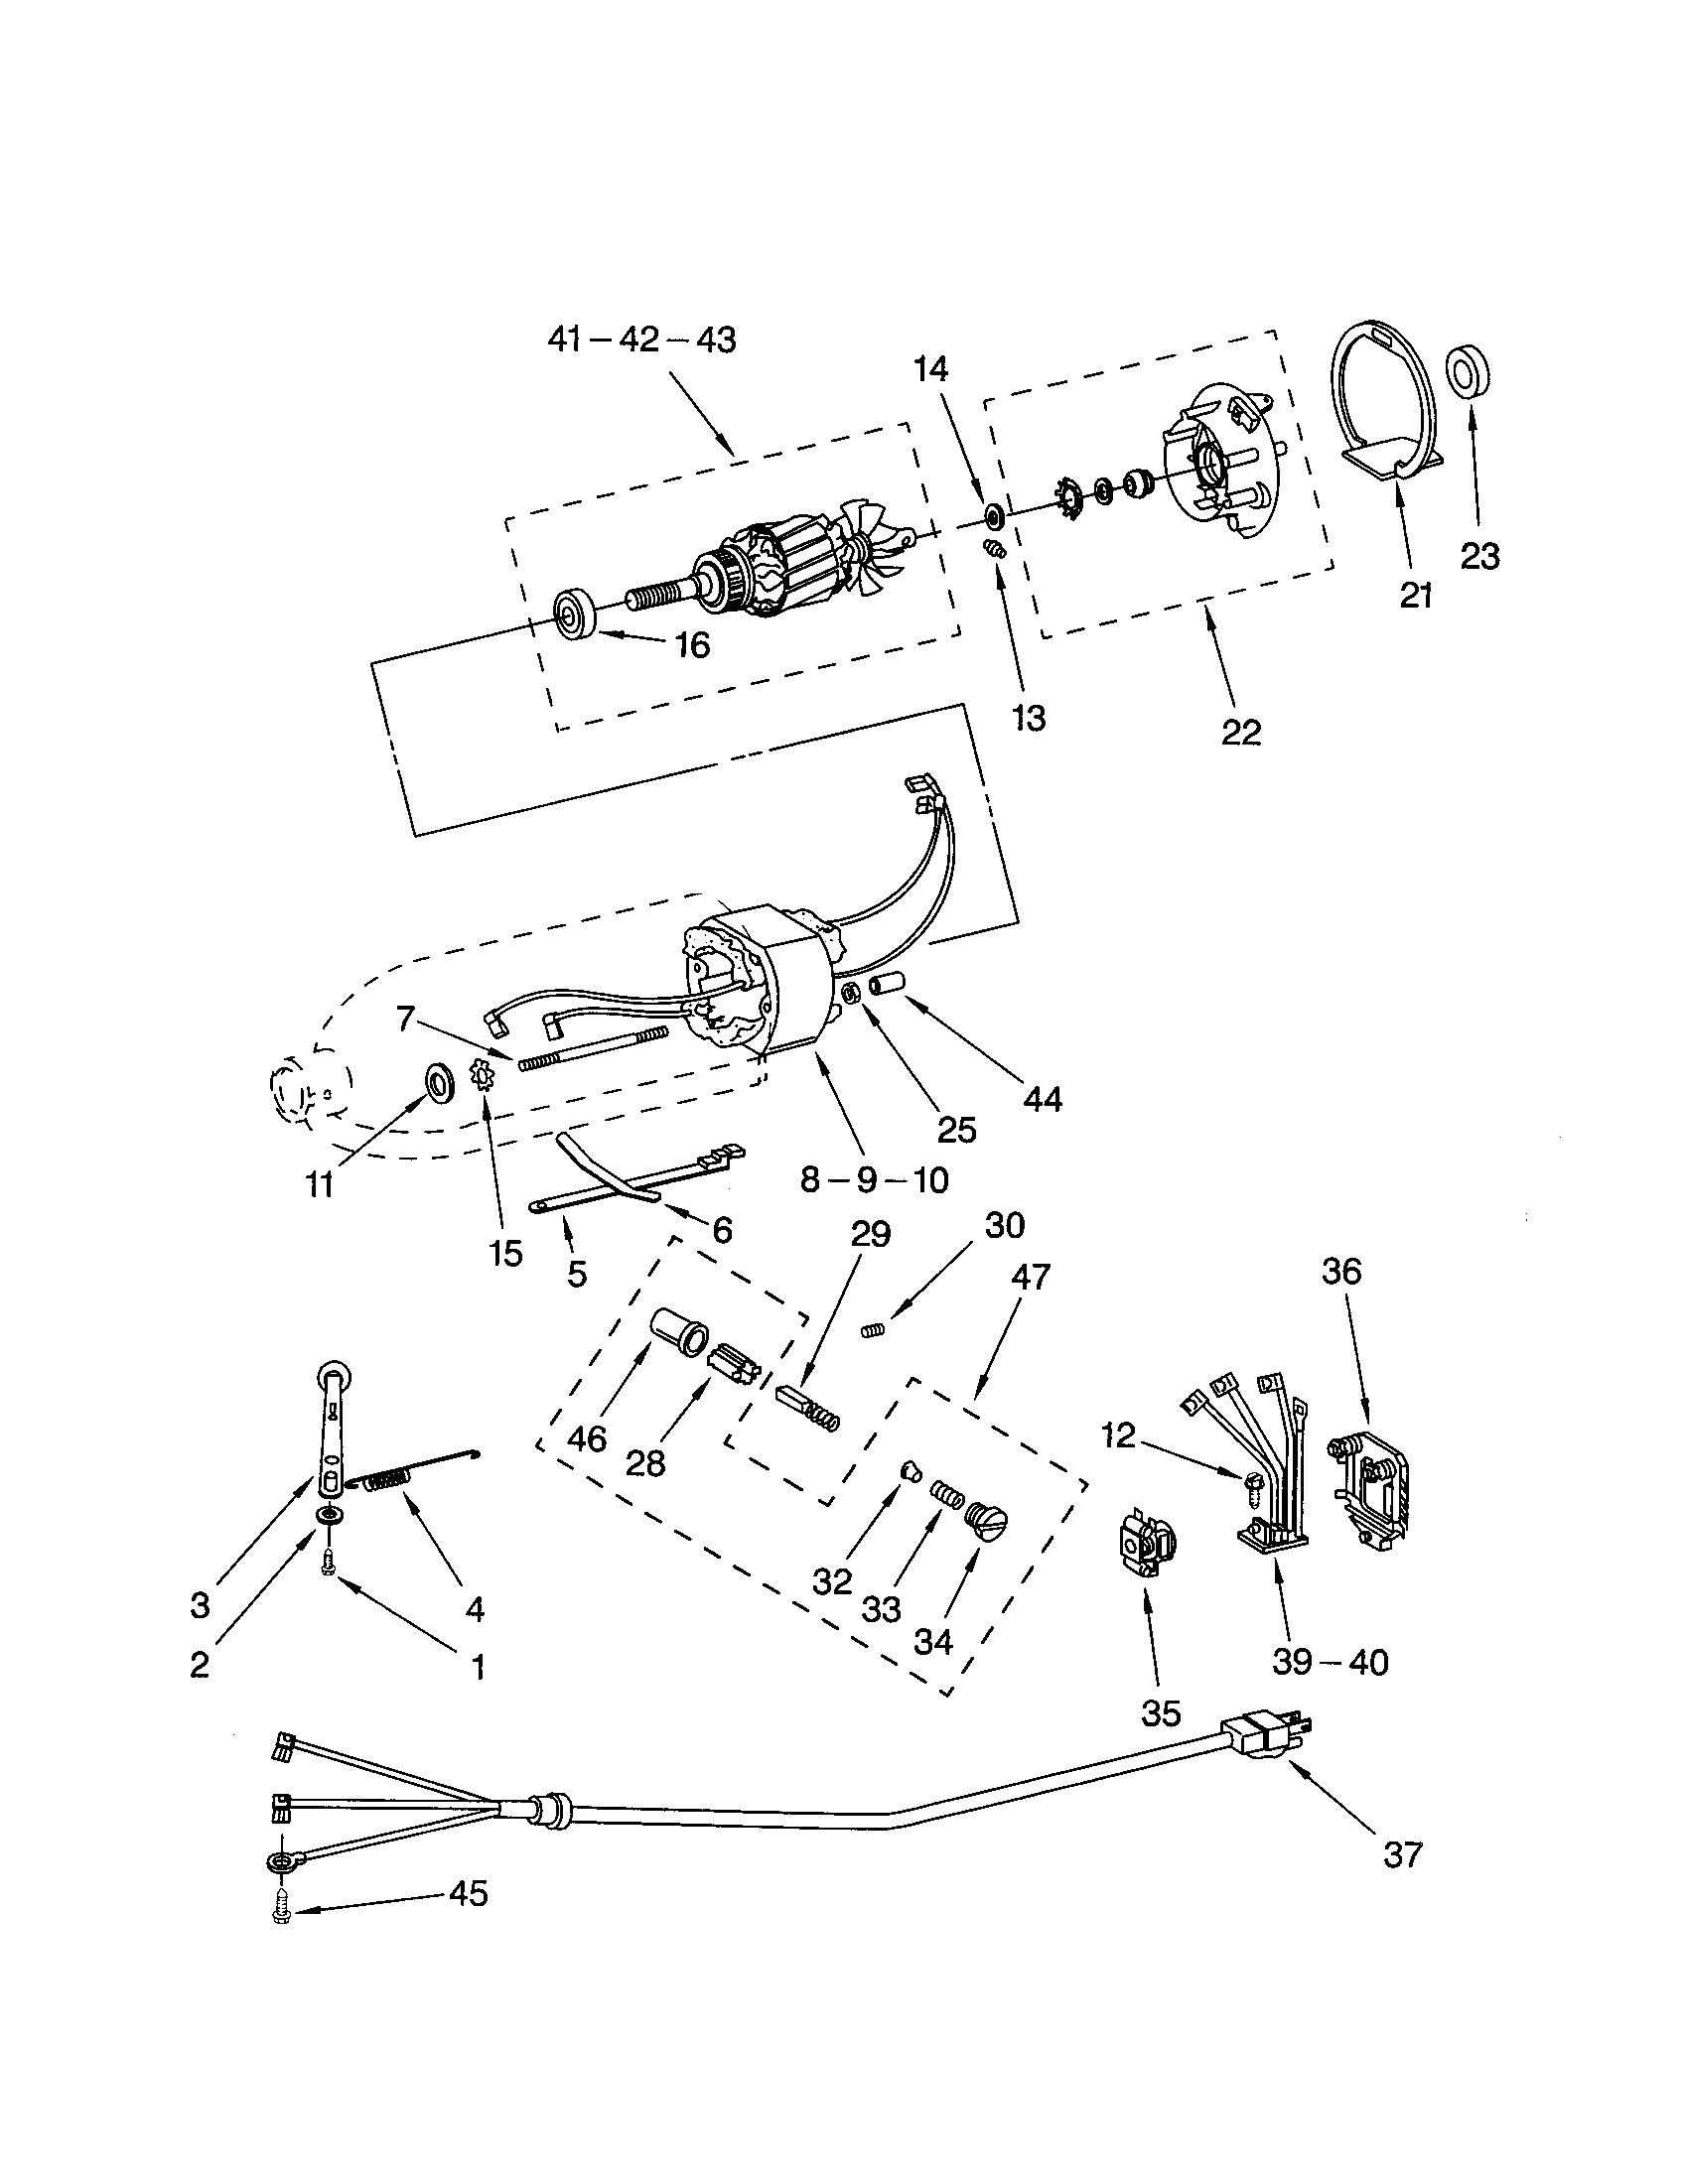 kitchenaid professional 600 parts diagram baseball field printable layout stand mixer replacement